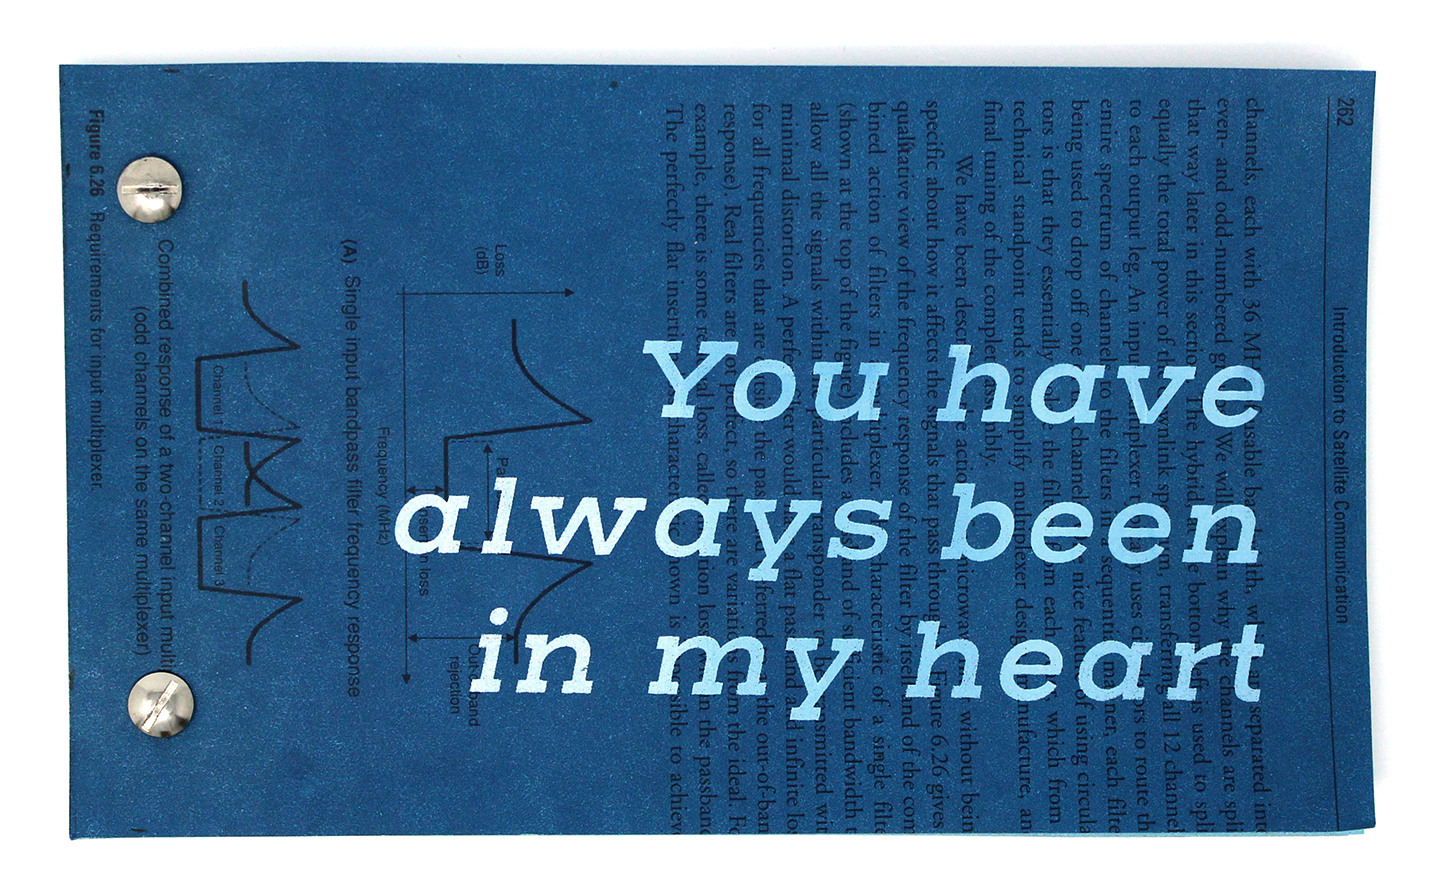 You Have Always Been in My Heart  is a book for and about the sky. It was created from a satellite communications book discarded from the Universidad Pelitecnica de Valencia-Facultad de Bellas Artes in Valencia, Spain. It was on view at Libros Intervenidos, an exhibition at the IMPACT conference Sept. 1-9, 2018 in Santander, Spain.